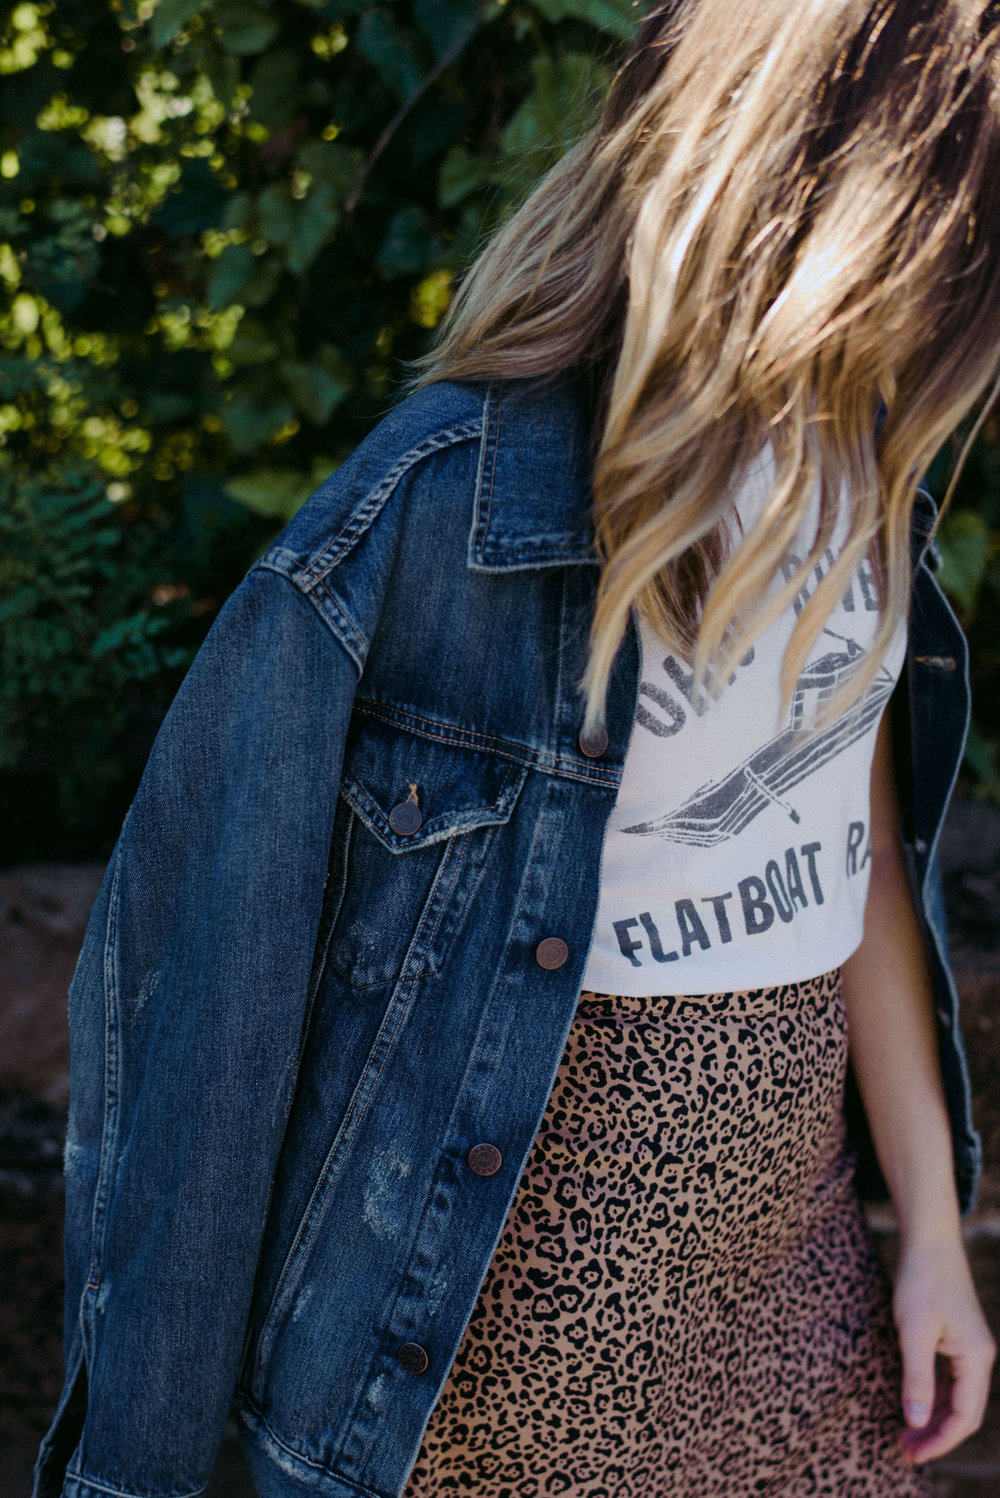 Denim jacket with leopard skirt outfit // A Week Of  Nashville-Chic Ethical Outfits With Jordan Soderholm, Fashion Director At ABLE on The Good Trade